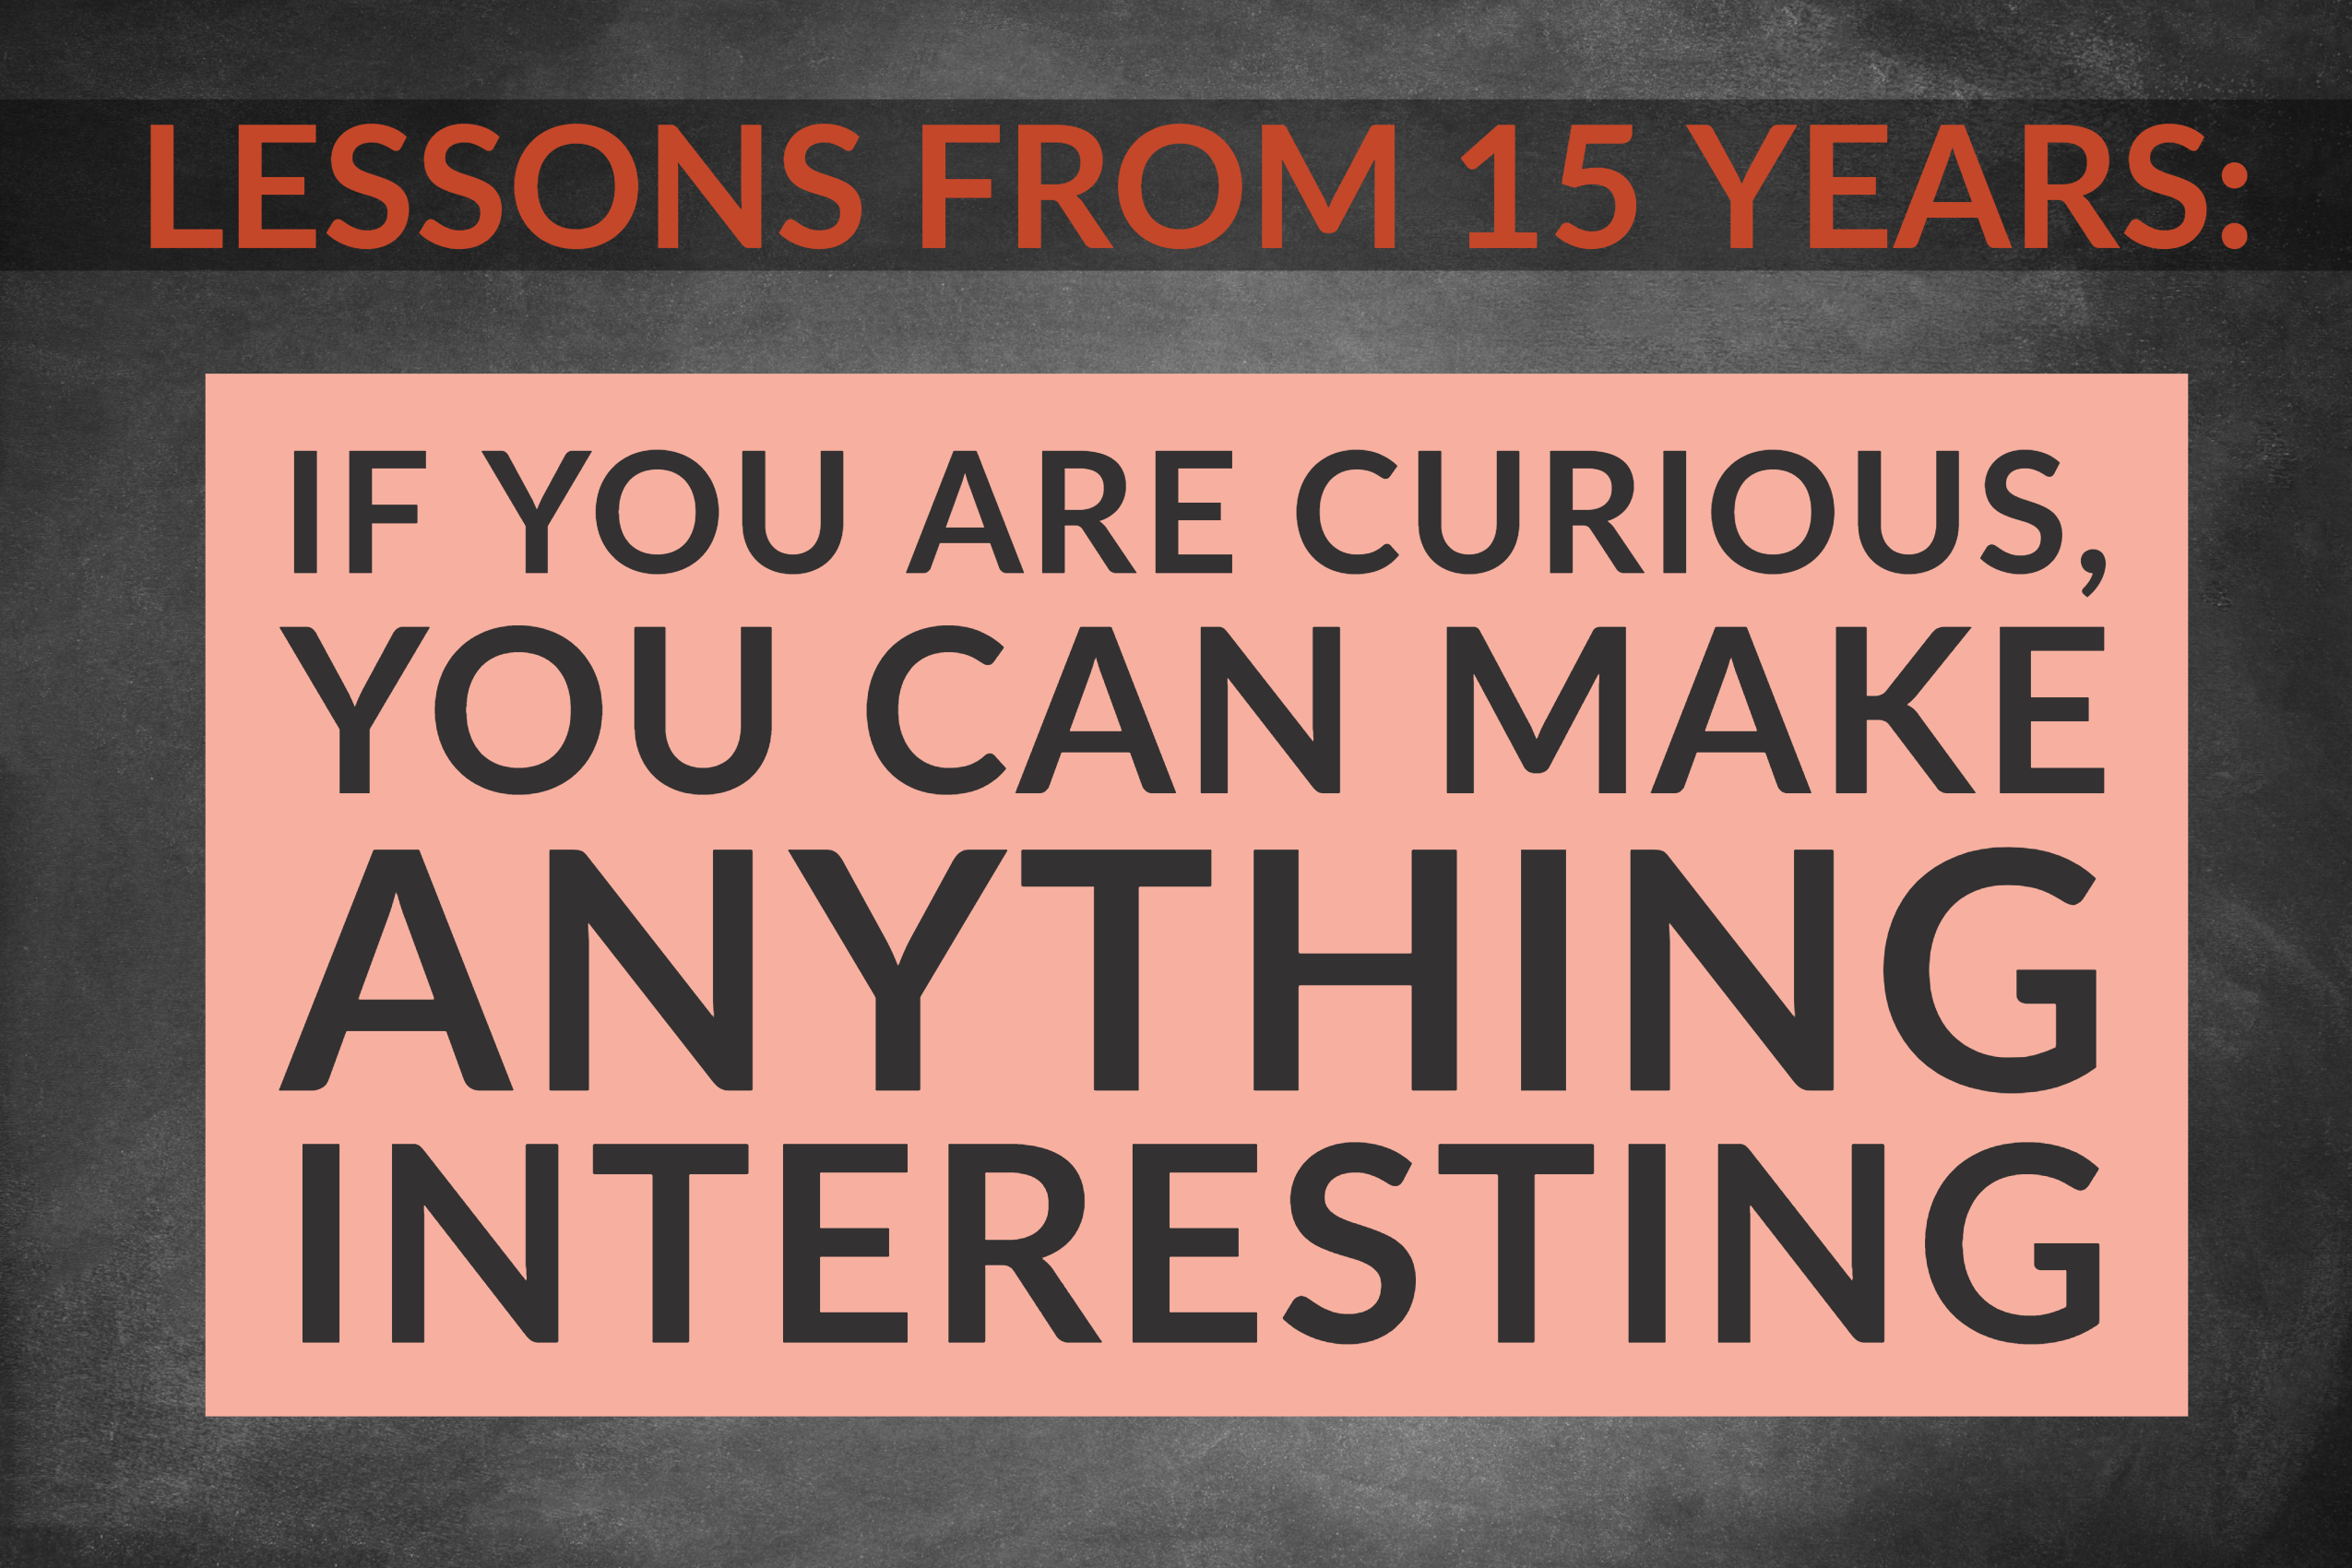 Lessons from 15 Years_ If You Are Curious, You Can Make Anything Interesting